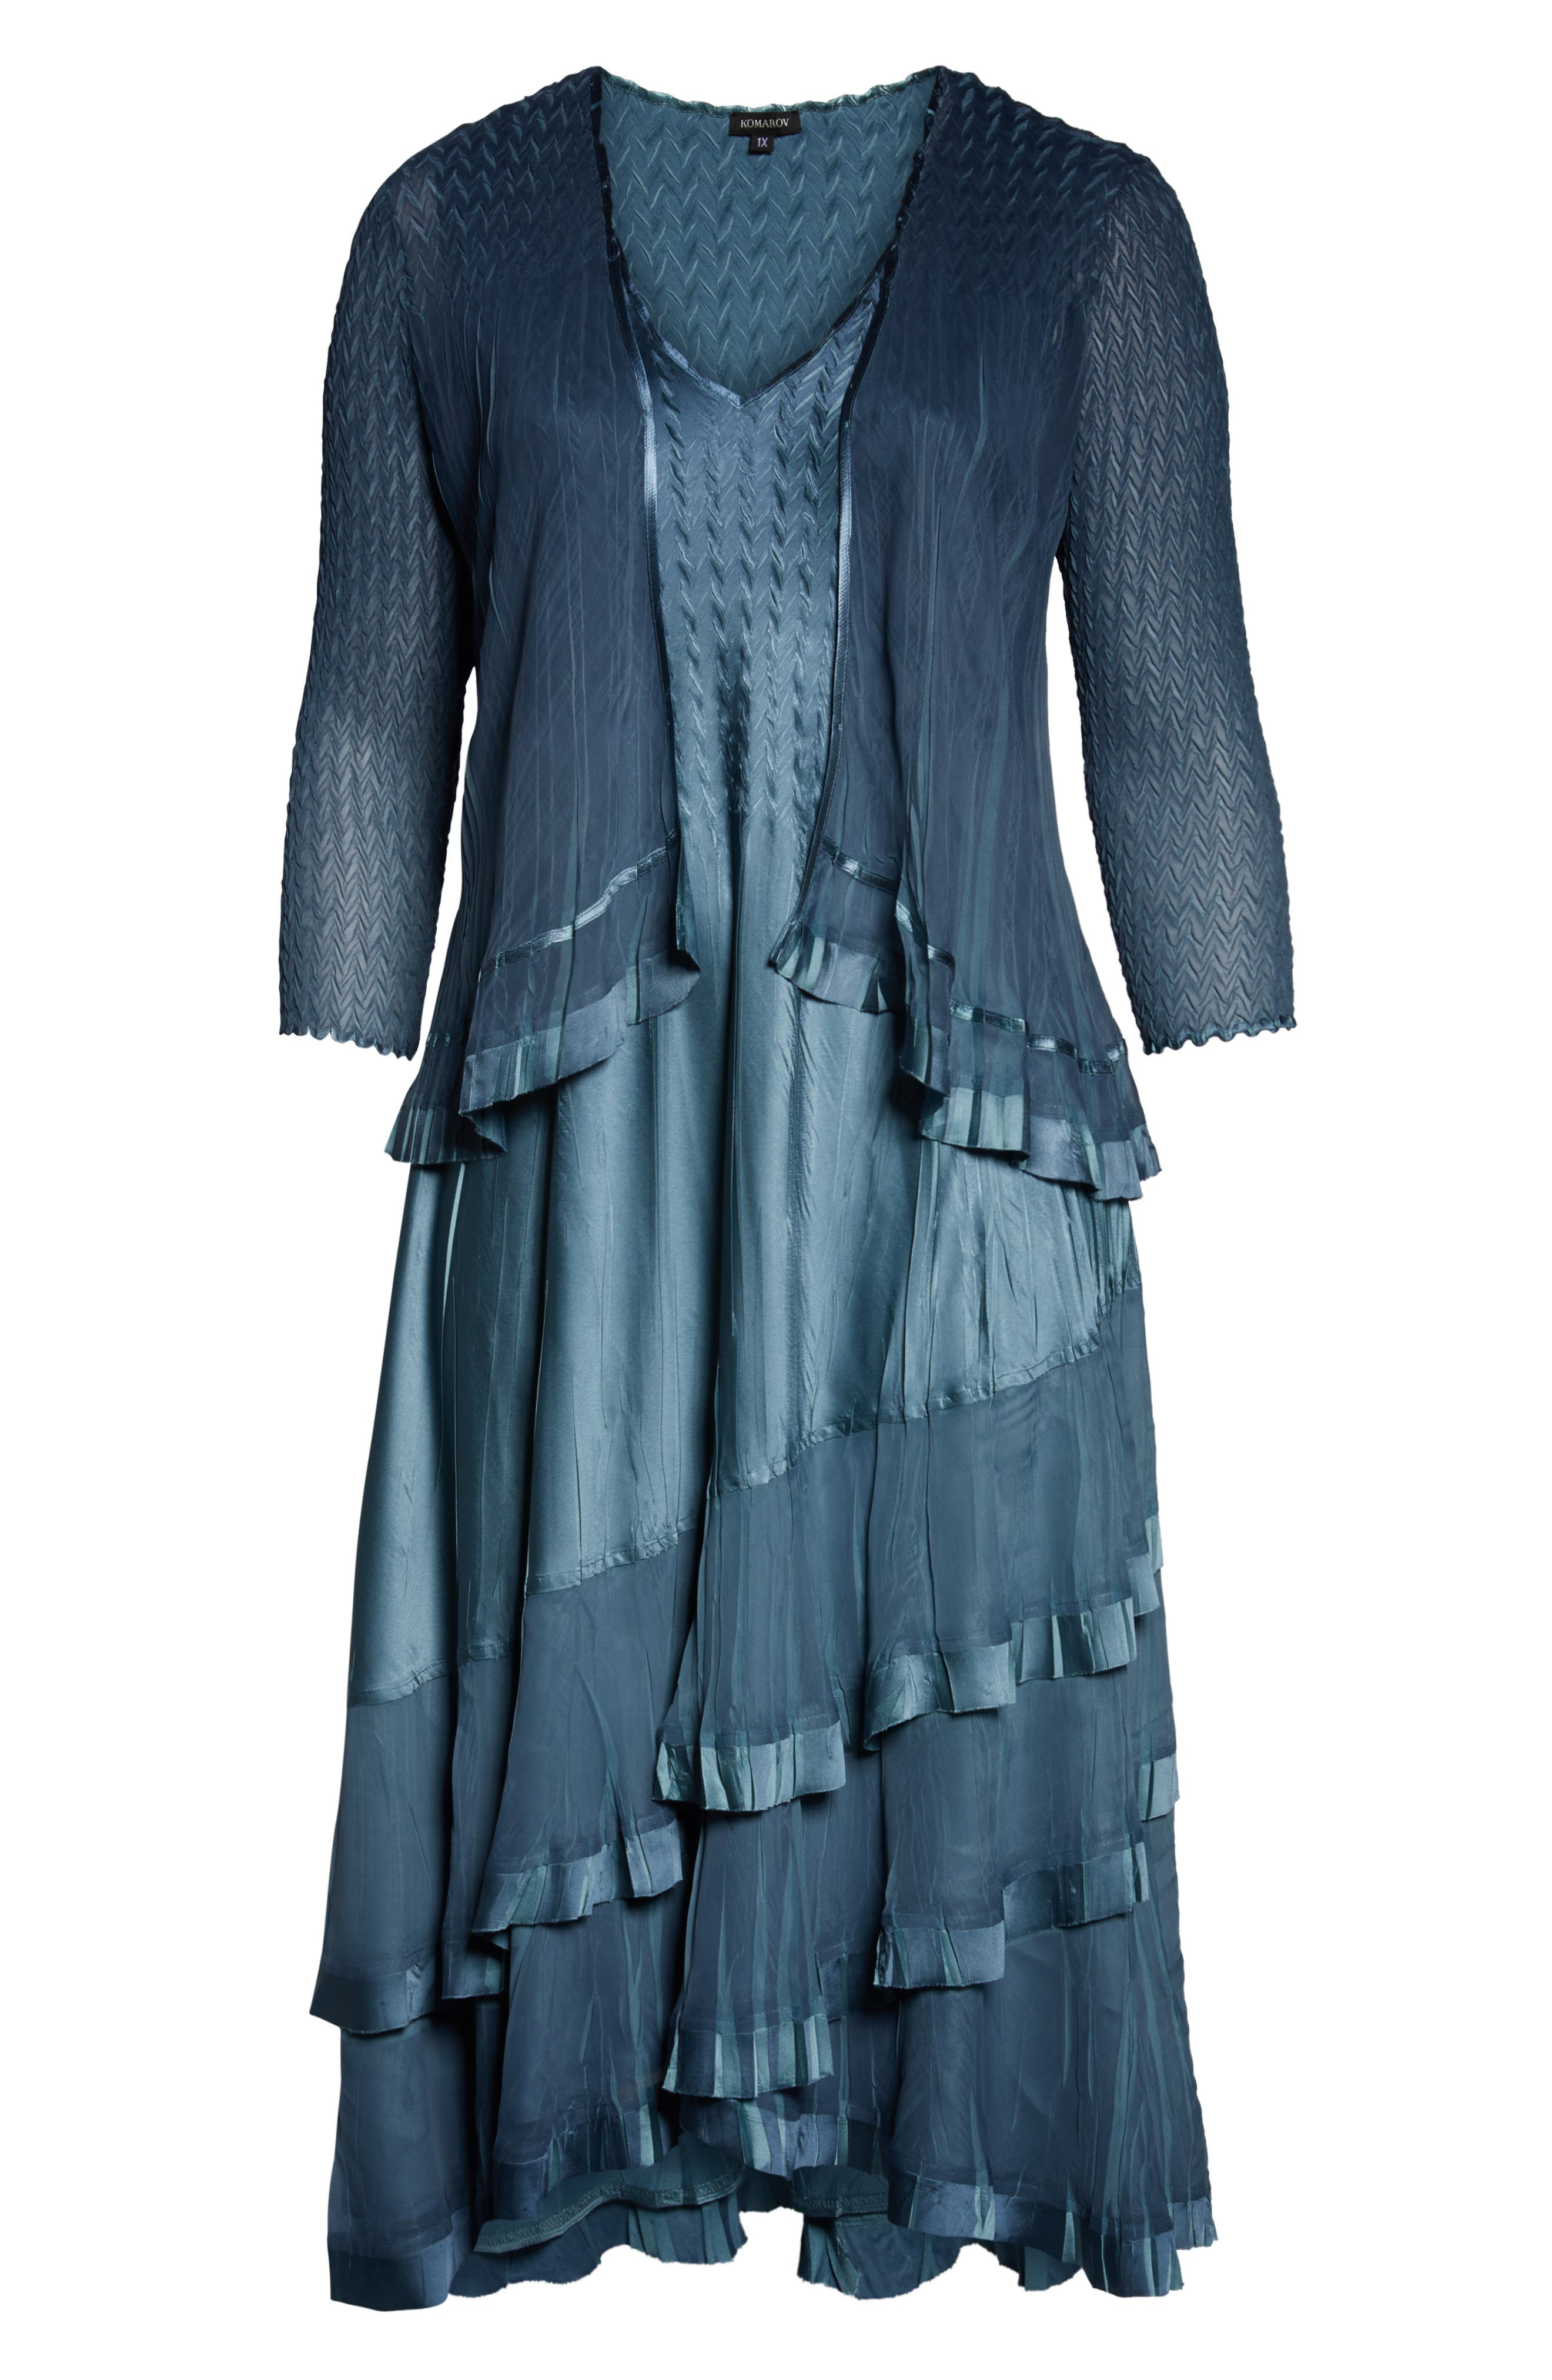 KOMAROV, Charmeuse Cocktail Dress with Jacket, Alternate thumbnail 7, color, SILVER BLUE OMBRE